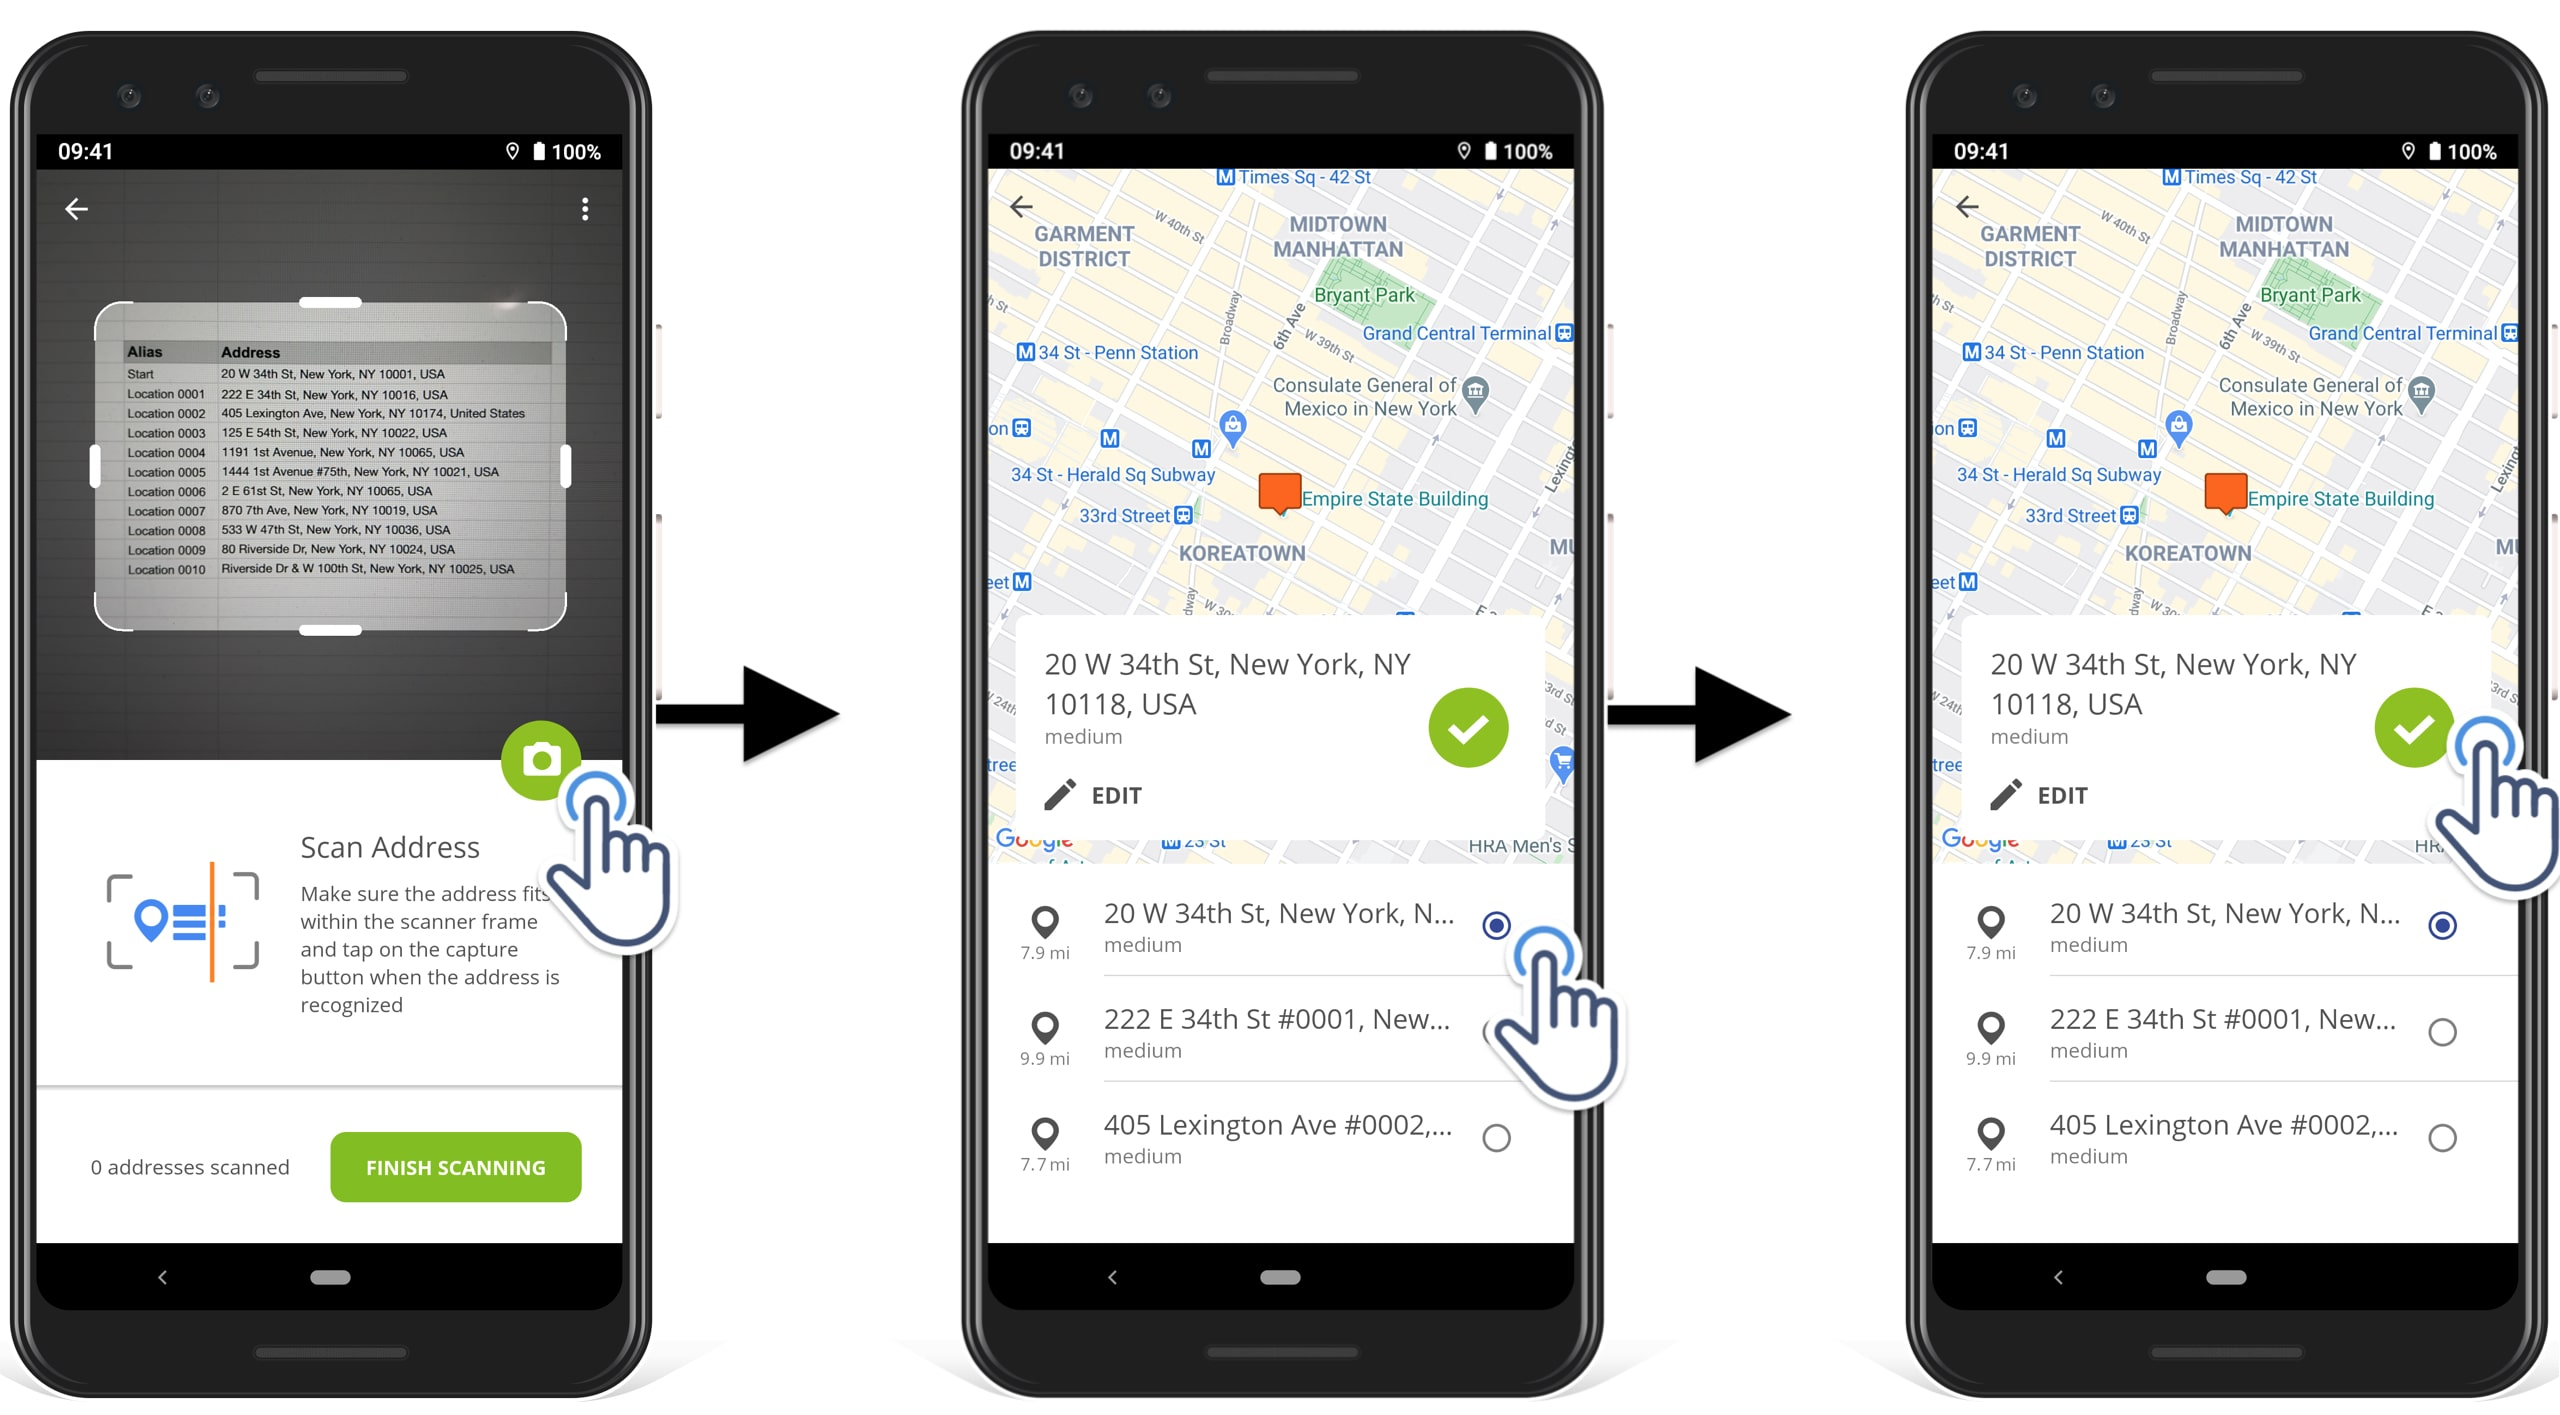 how to choose already geocode addresses from all recognized addresses in Route4Me route planner app